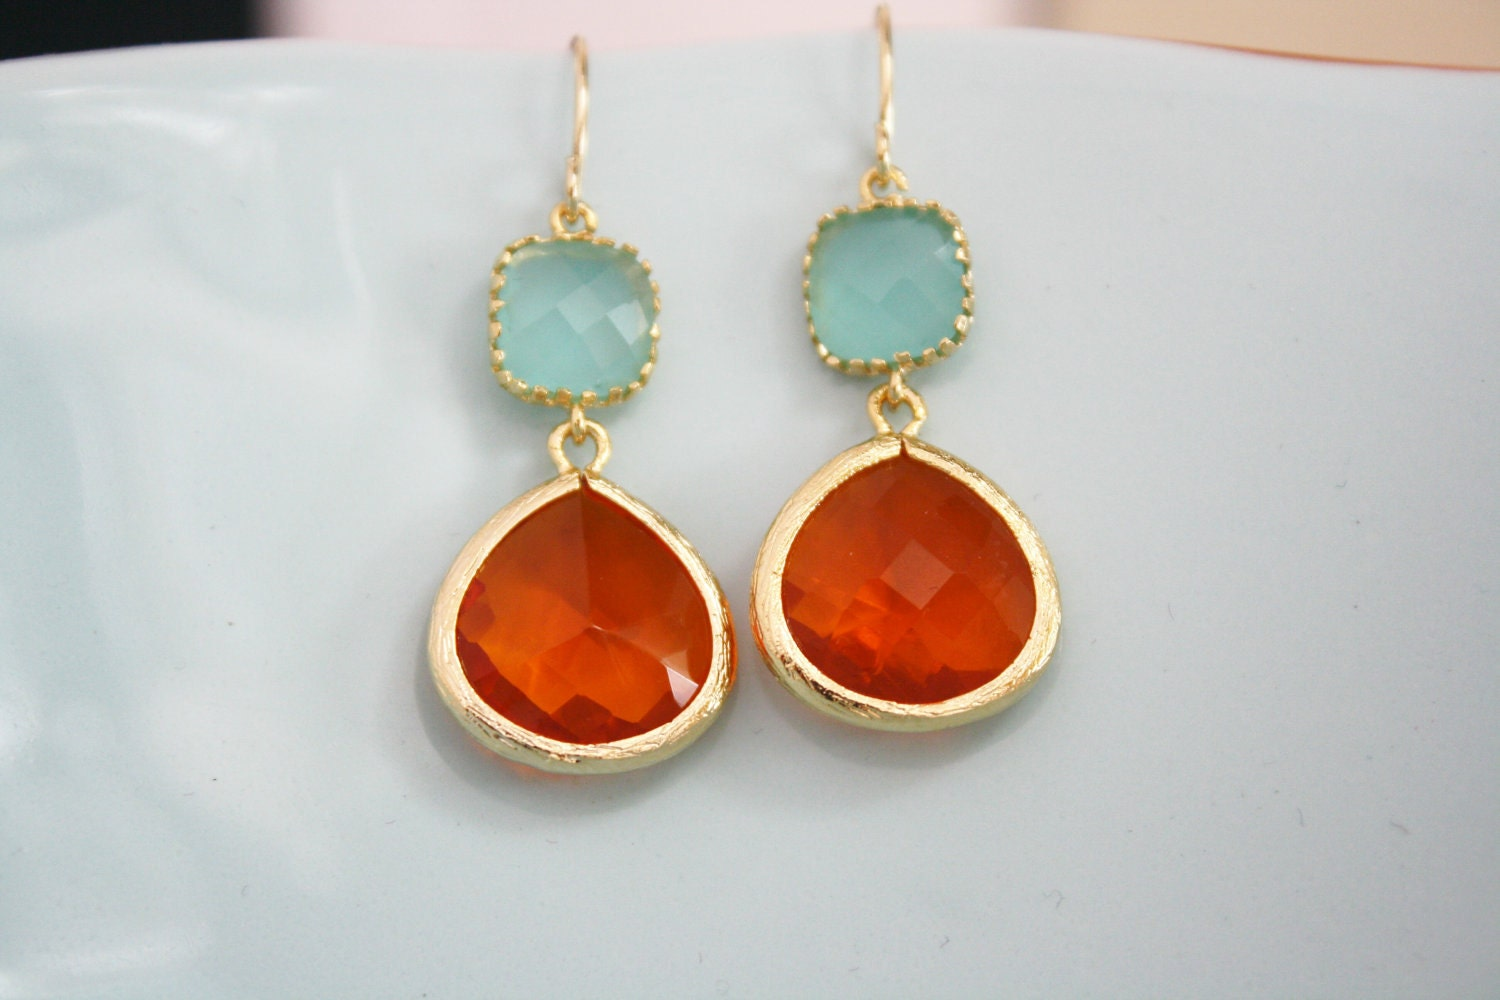 Tangerine Orange Tiffany Blue Glass Earrings, Bridesmaids Jewelry, Bridal Jewelry, Wedding Jewelry